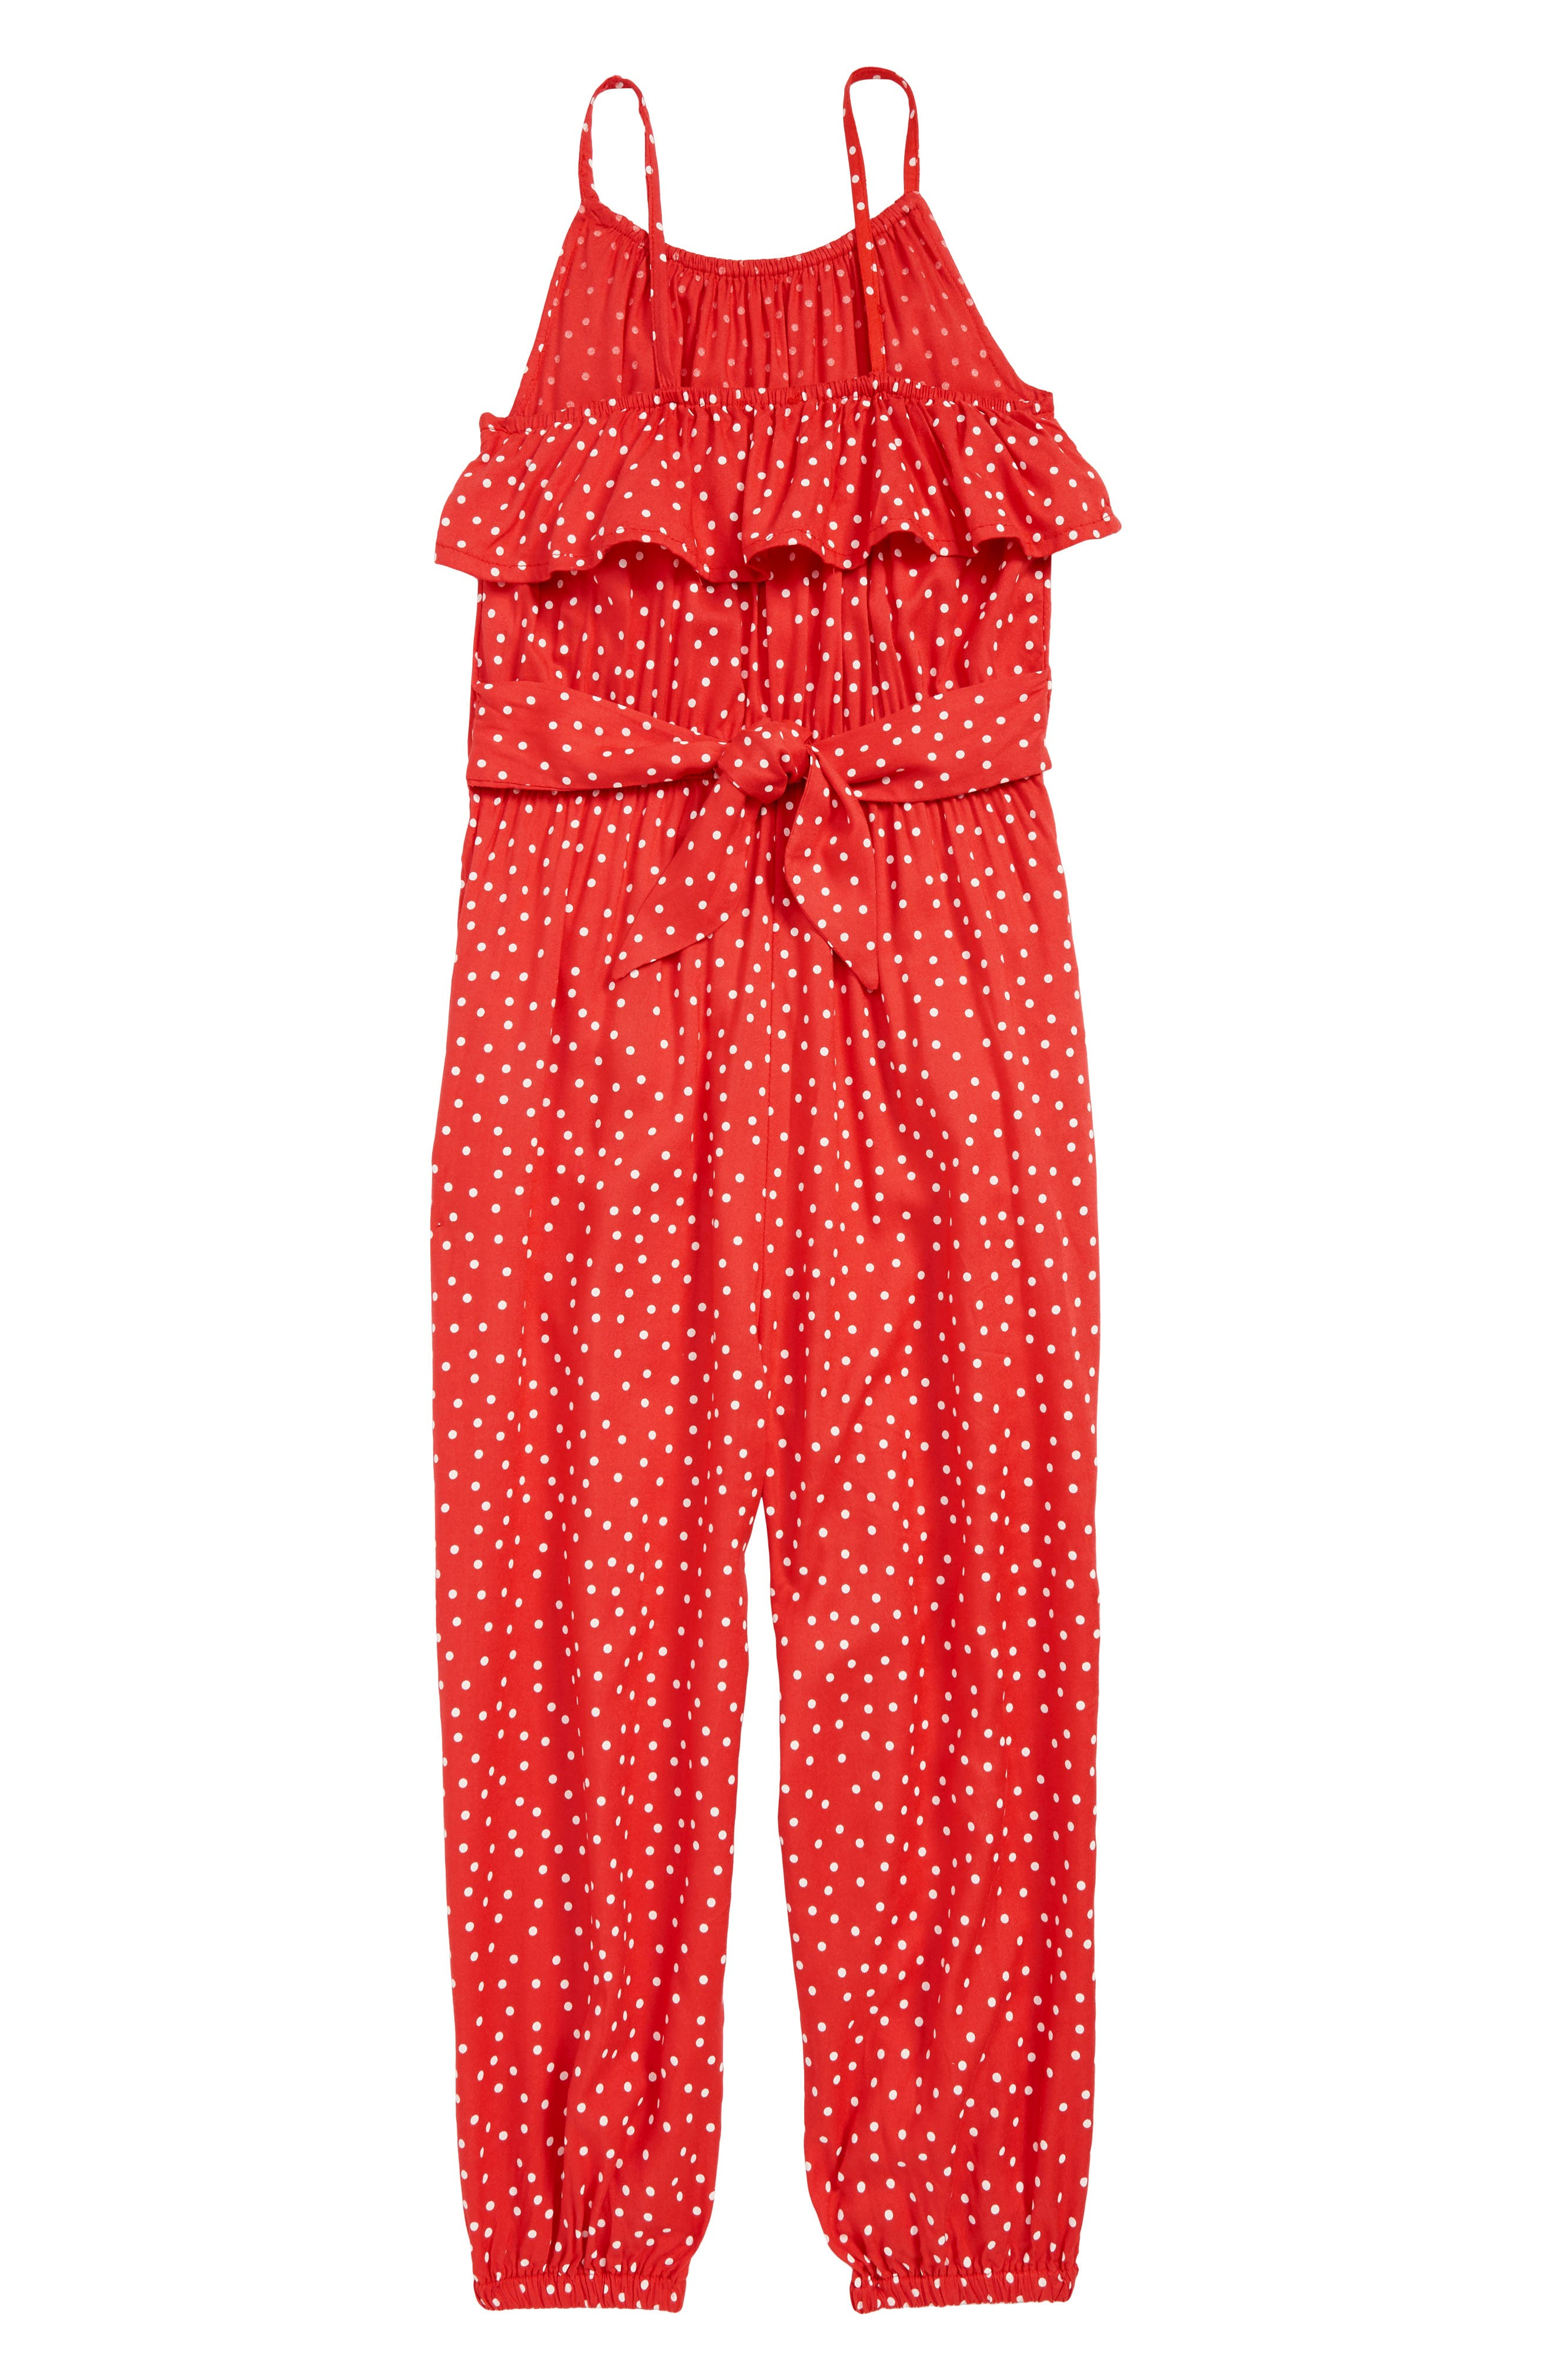 3edc47672ba Rompers   Jumpsuits Tucker + Tate Clothing   Shoes